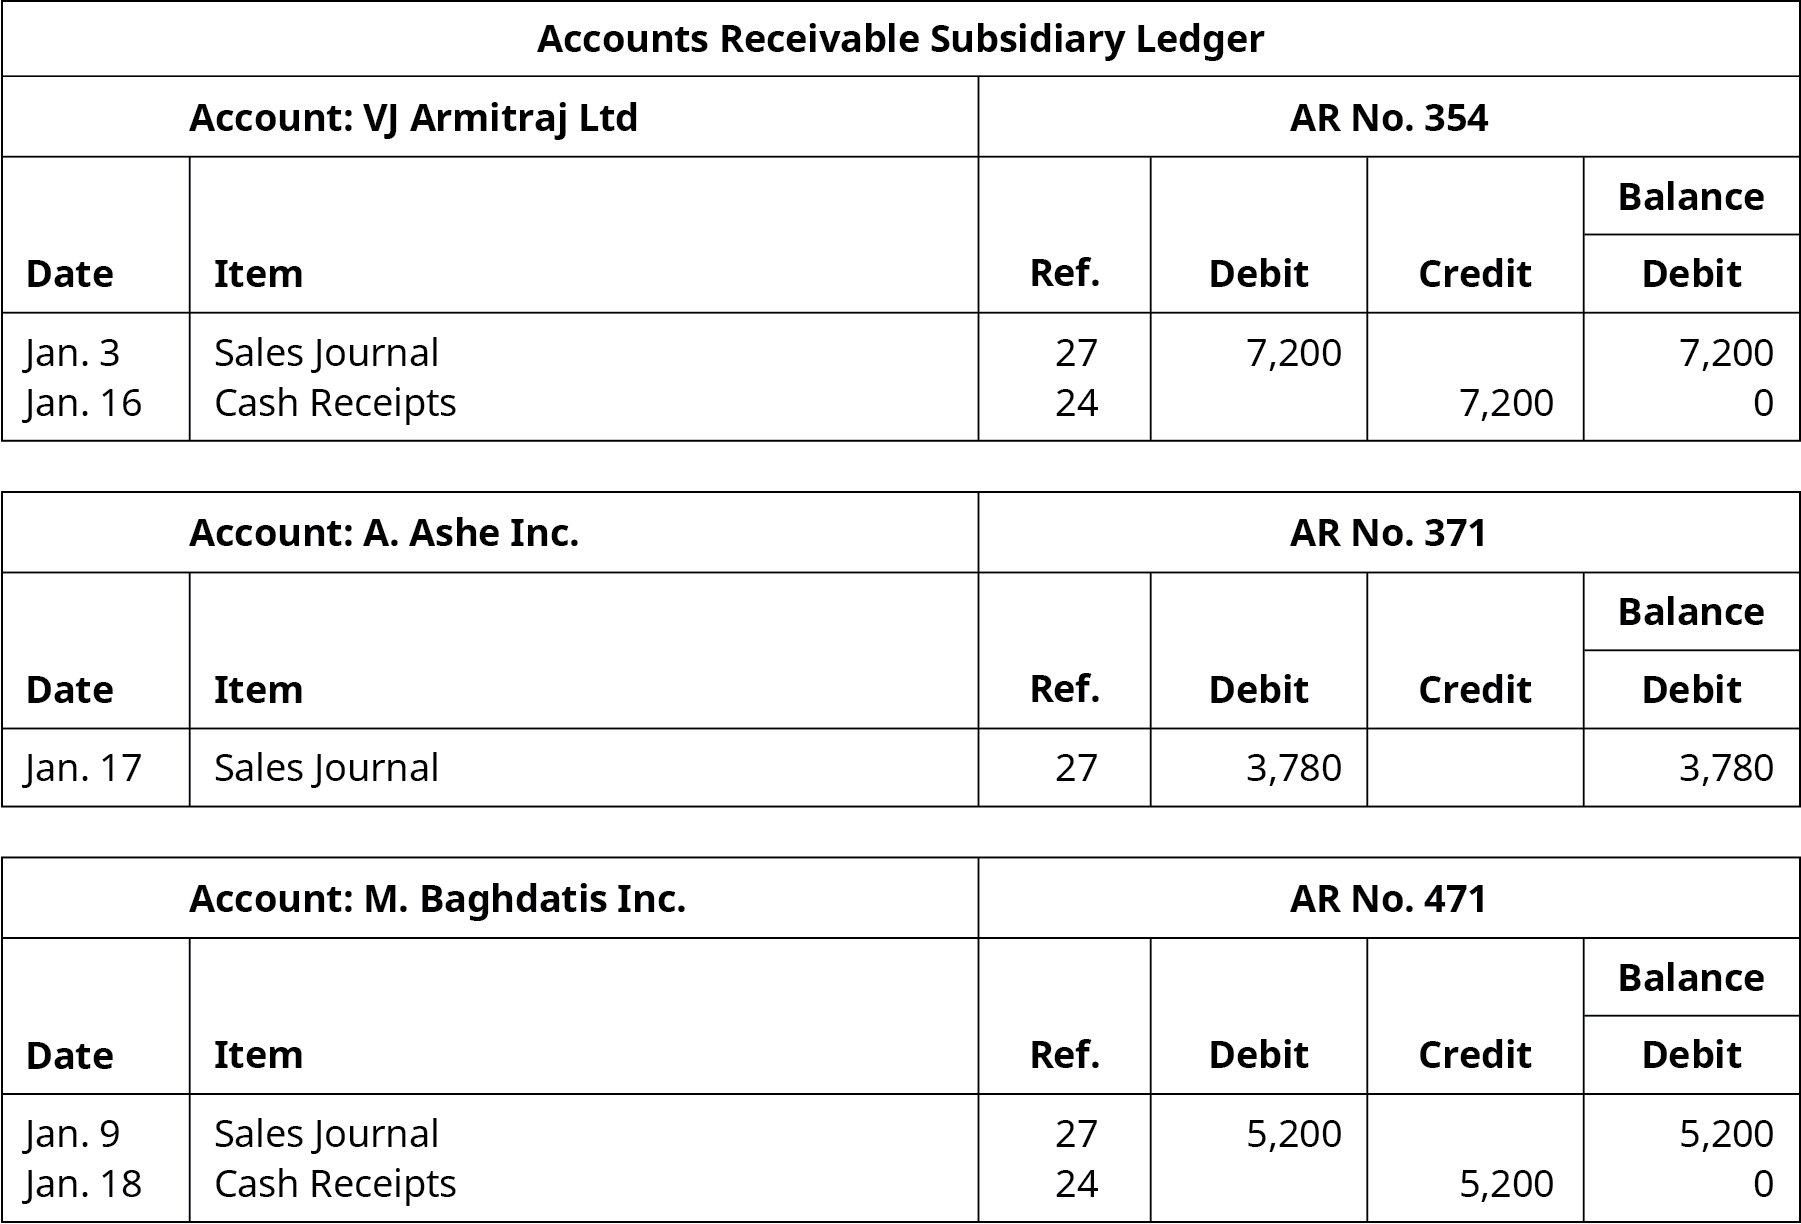 Accounts Receivable Subsidiary Ledger. Six columns, labeled left to right: Date, Item, Reference, Debit, Credit, Balance. VJ Armitraj Ltd; Account Number 354. Line One: January 3; Sales Journal; 27; 7,200; Blank; 7,200. Line Two: January 16; Cash Receipts; 24; Blank; 7,200; Blank. A. Ashe Inc; Account Number 371. Line One: January 17; Sales Journal; 27; 3,780; Blank; 3,780. M. Baghdatis Inc; Account Number 471. Line One: January 9; Sales Journal; 27; 5,200; Blank; 5,200. Line Two: January 18; Cash Receipts; 24; Blank; 5,200; Blank.